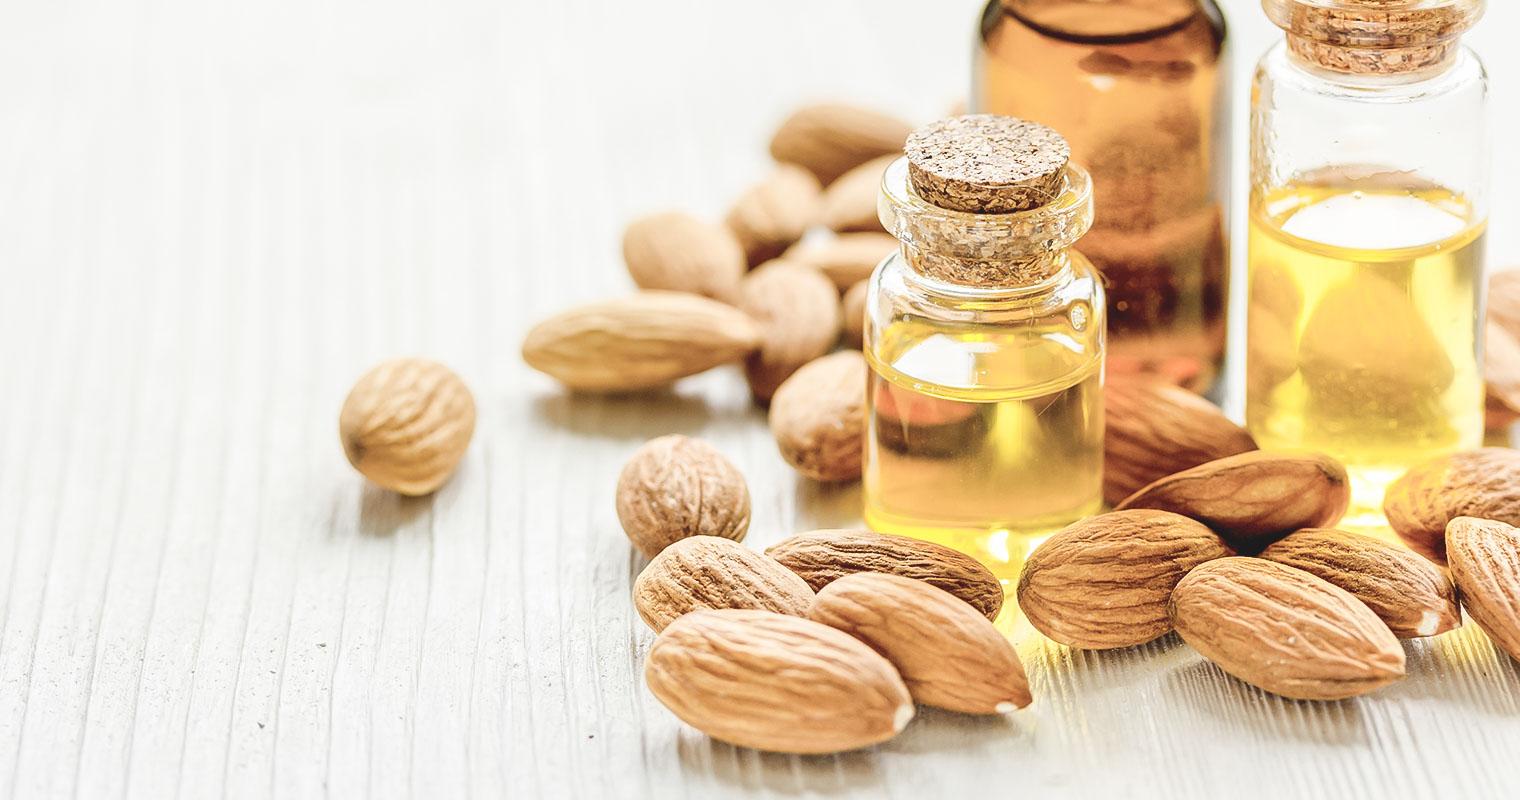 Small bottles of Almond oil surrounded by Almond seeds